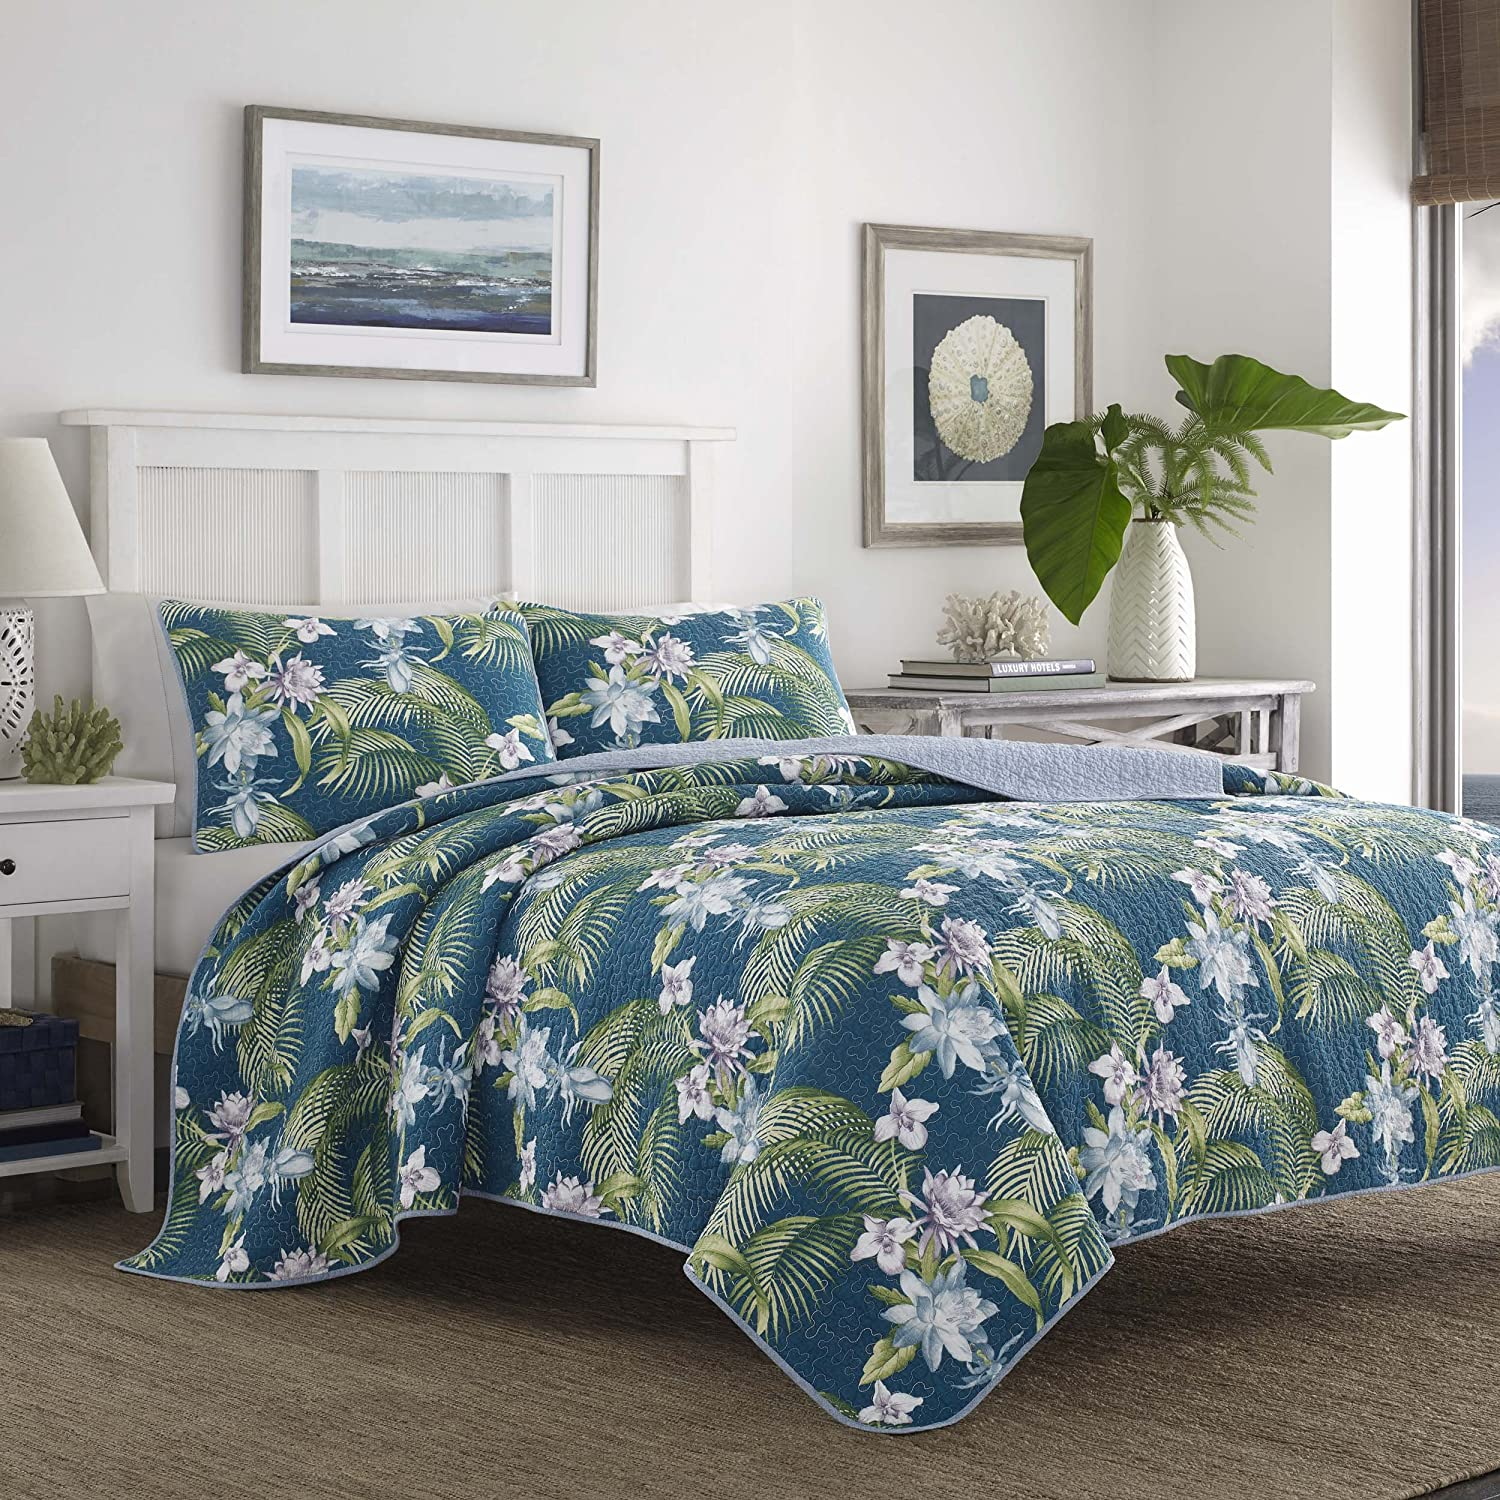 Tommy Bahama Southern Breeze Quilt Set, Full/Queen, Dark Blue